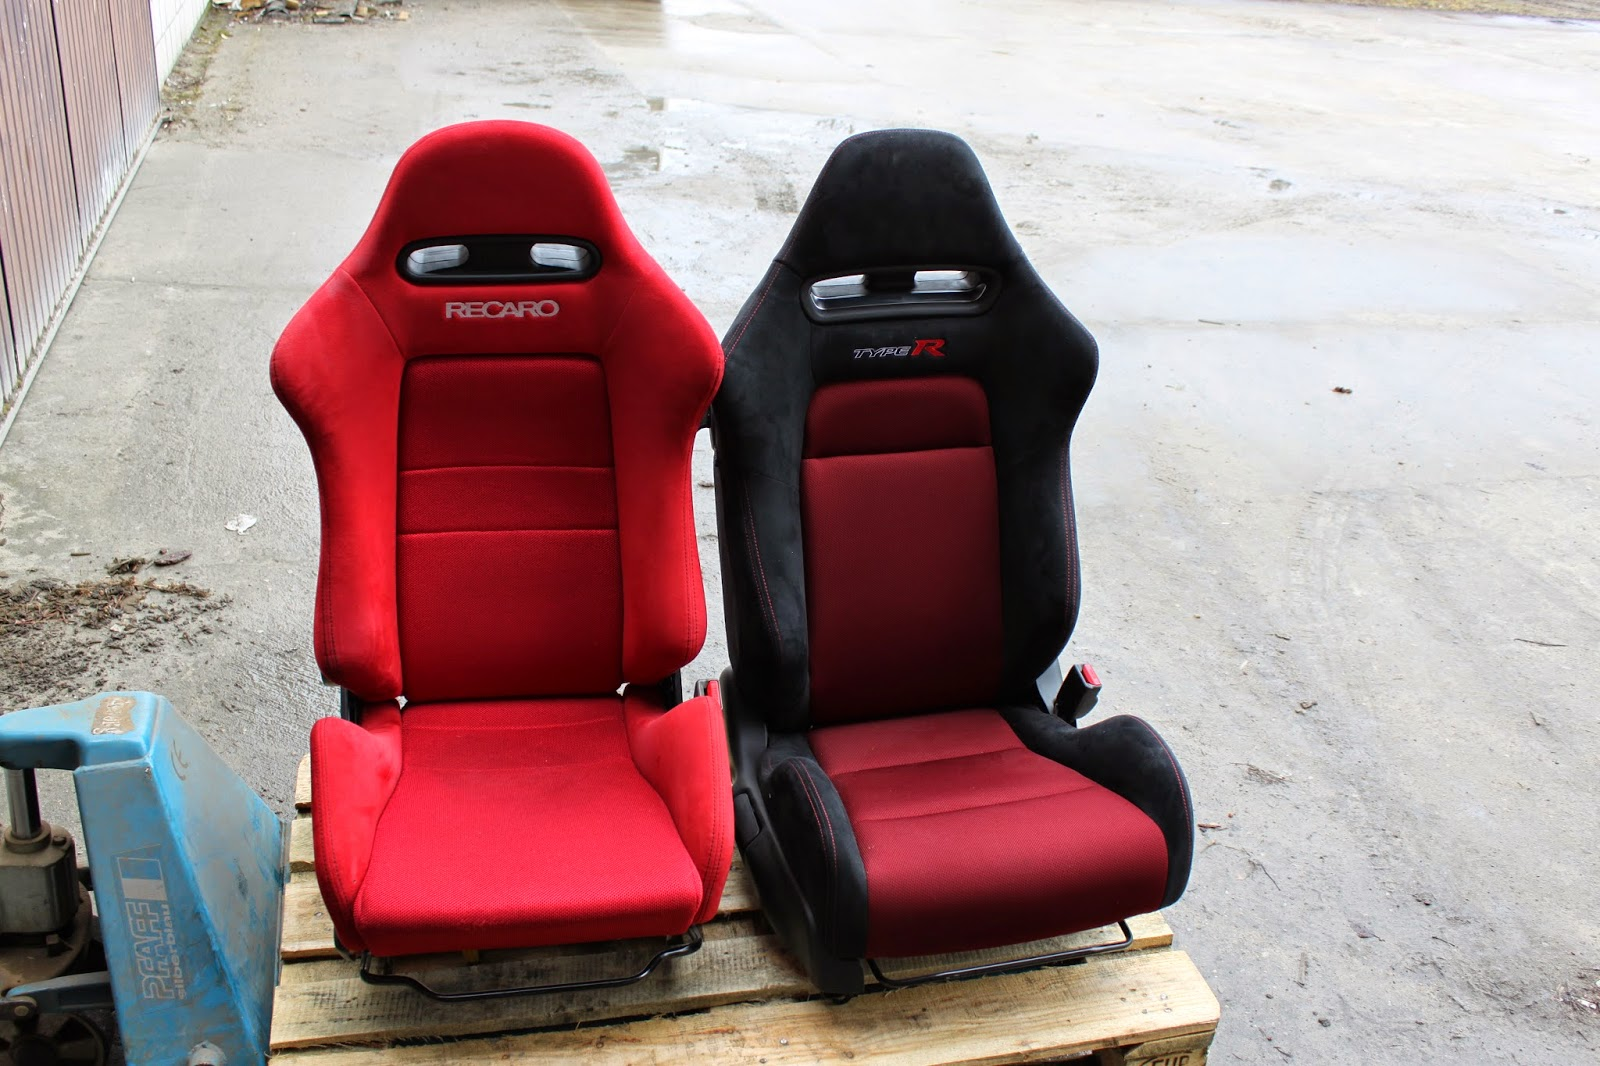 seats fn2 jdm dc5 recaro honda type chair front gaming civic homemade rsx acura integra